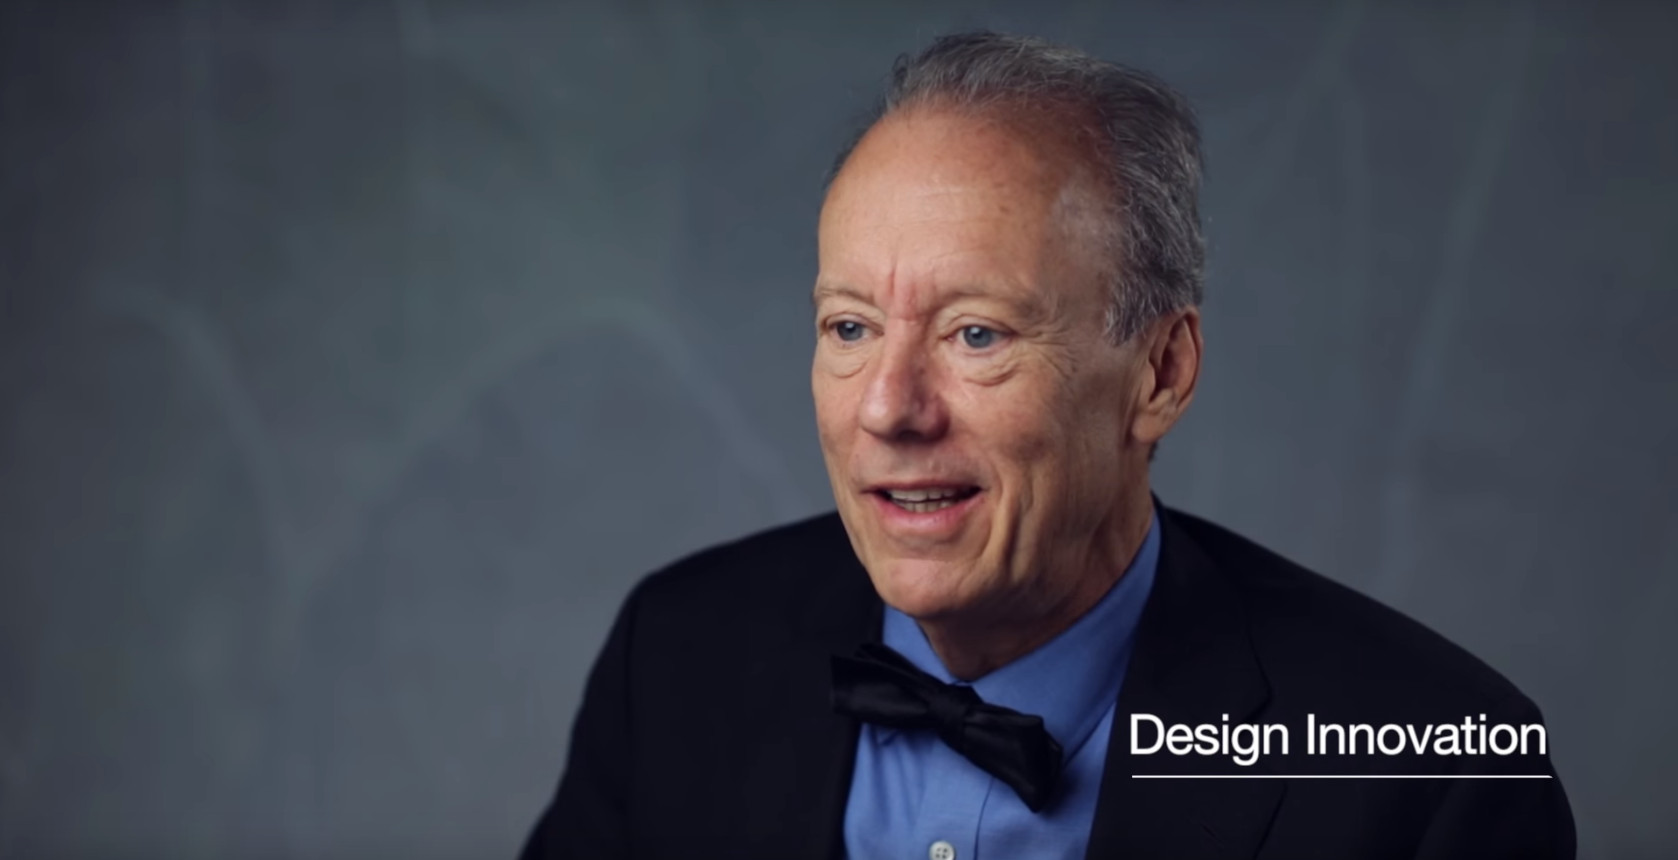 Circular Economy Design Innovation – William McDonough | Sustainable Brands